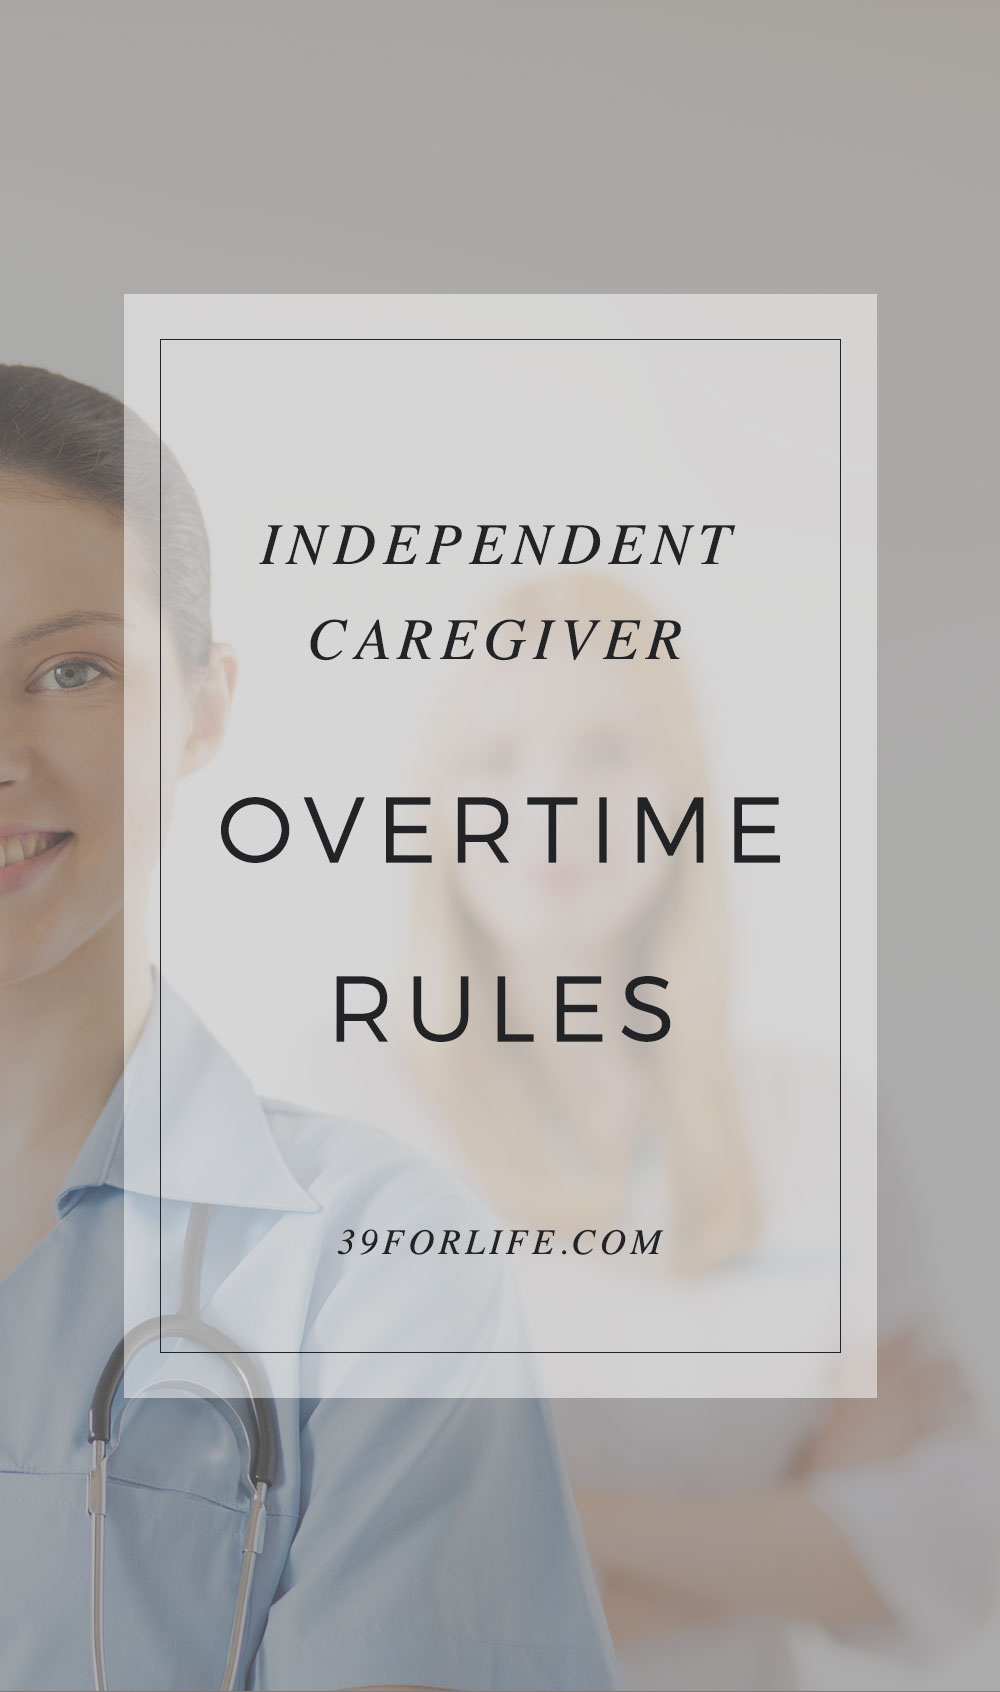 Do you know the overtime pay laws and regulations for independent caregivers? It's worth double checking to make sure you aren't breaking any rules.